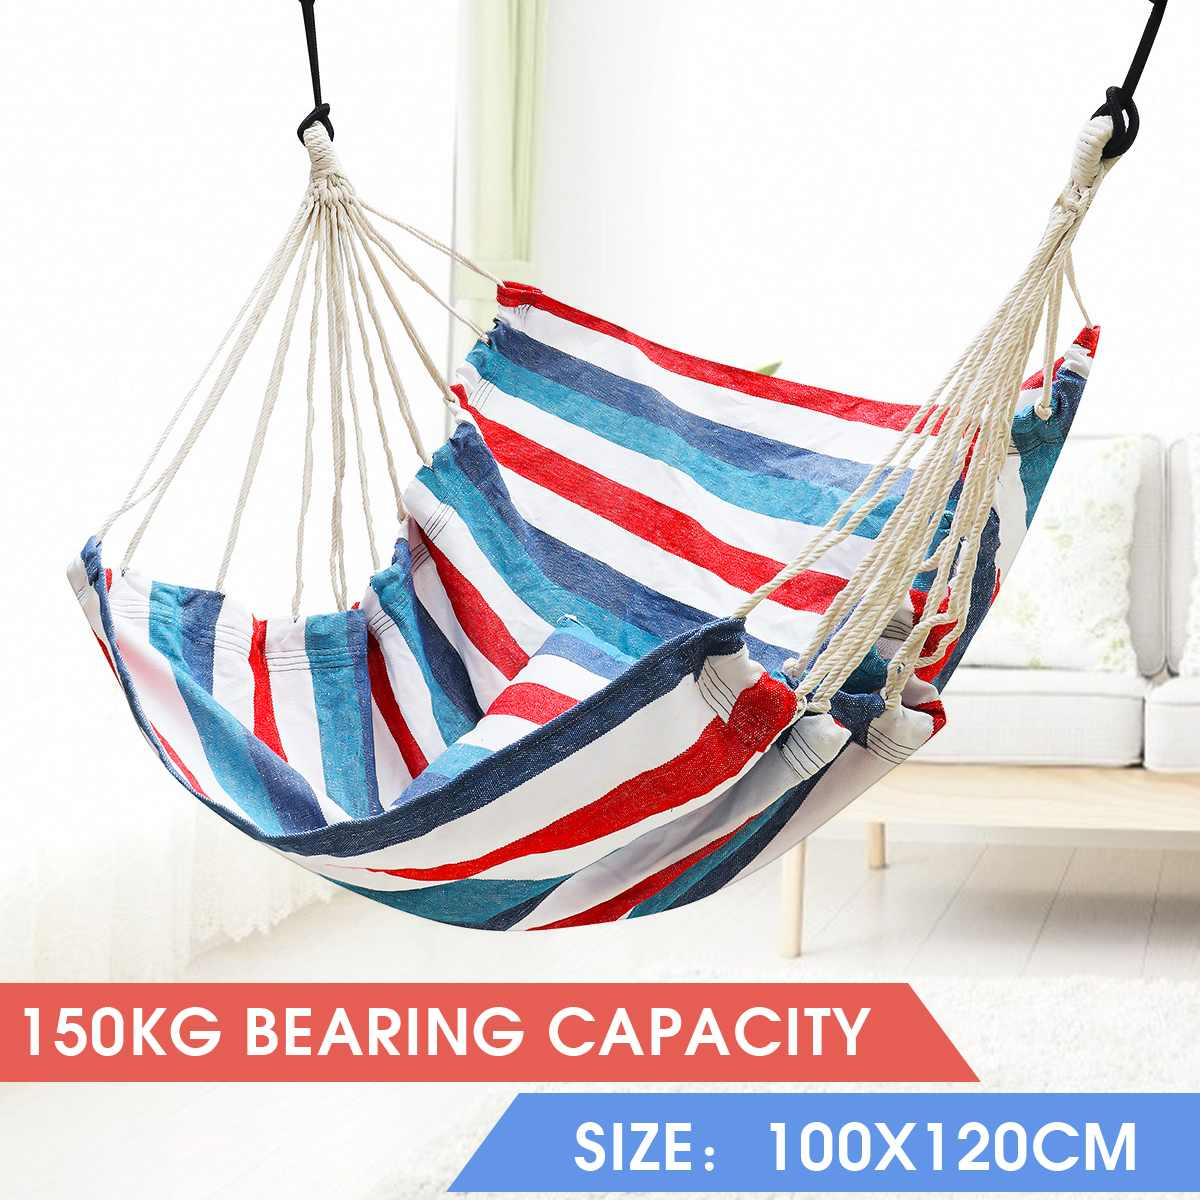 2 Pillow Hammock Hanging Rope Hammock Chair Swing Seat Large Hammock Chair Relax Hanging Swing Chair for Indoor Child Adult 1